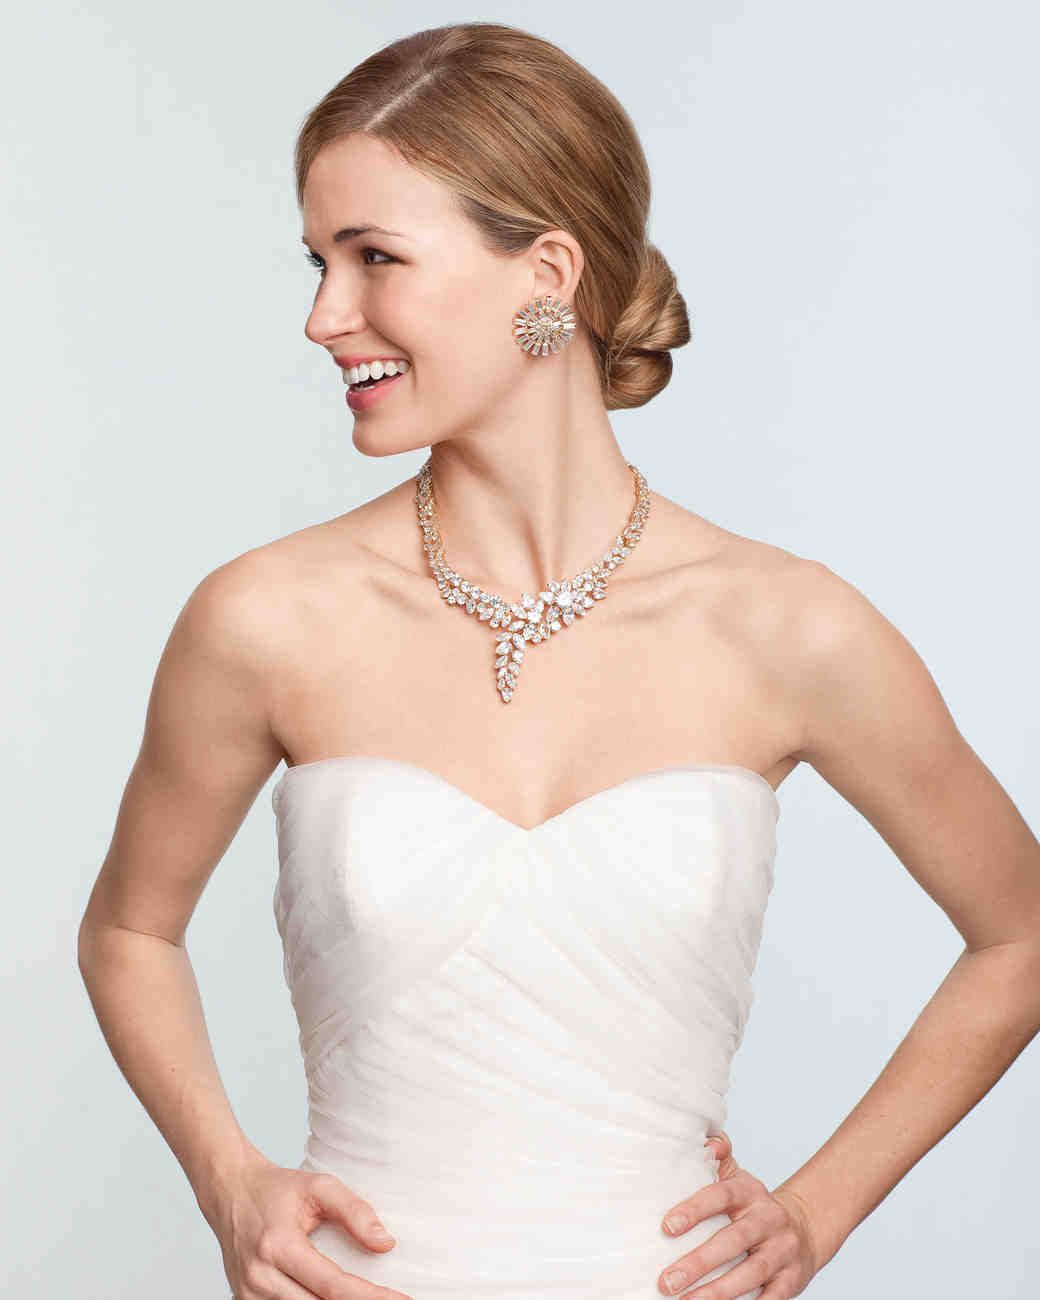 Bridal Jewelry For Every Wedding Dress Style